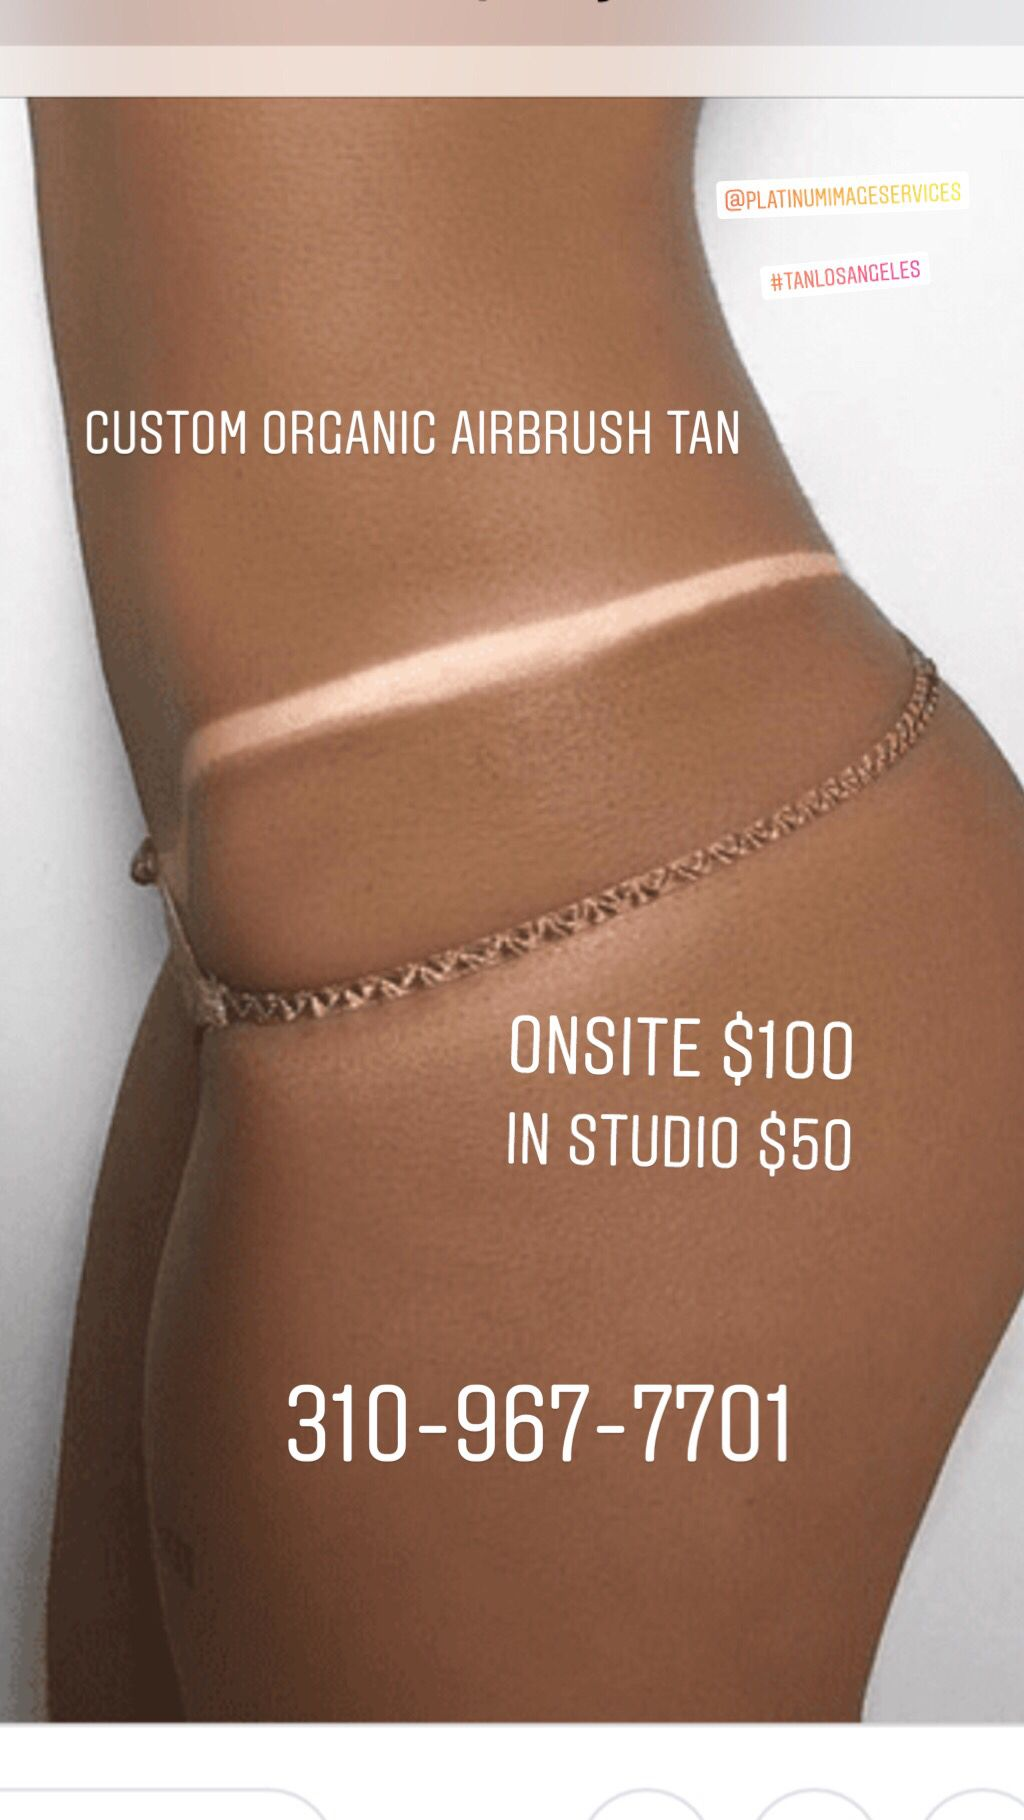 This custom organic airbrush tan Can be done anywhere in